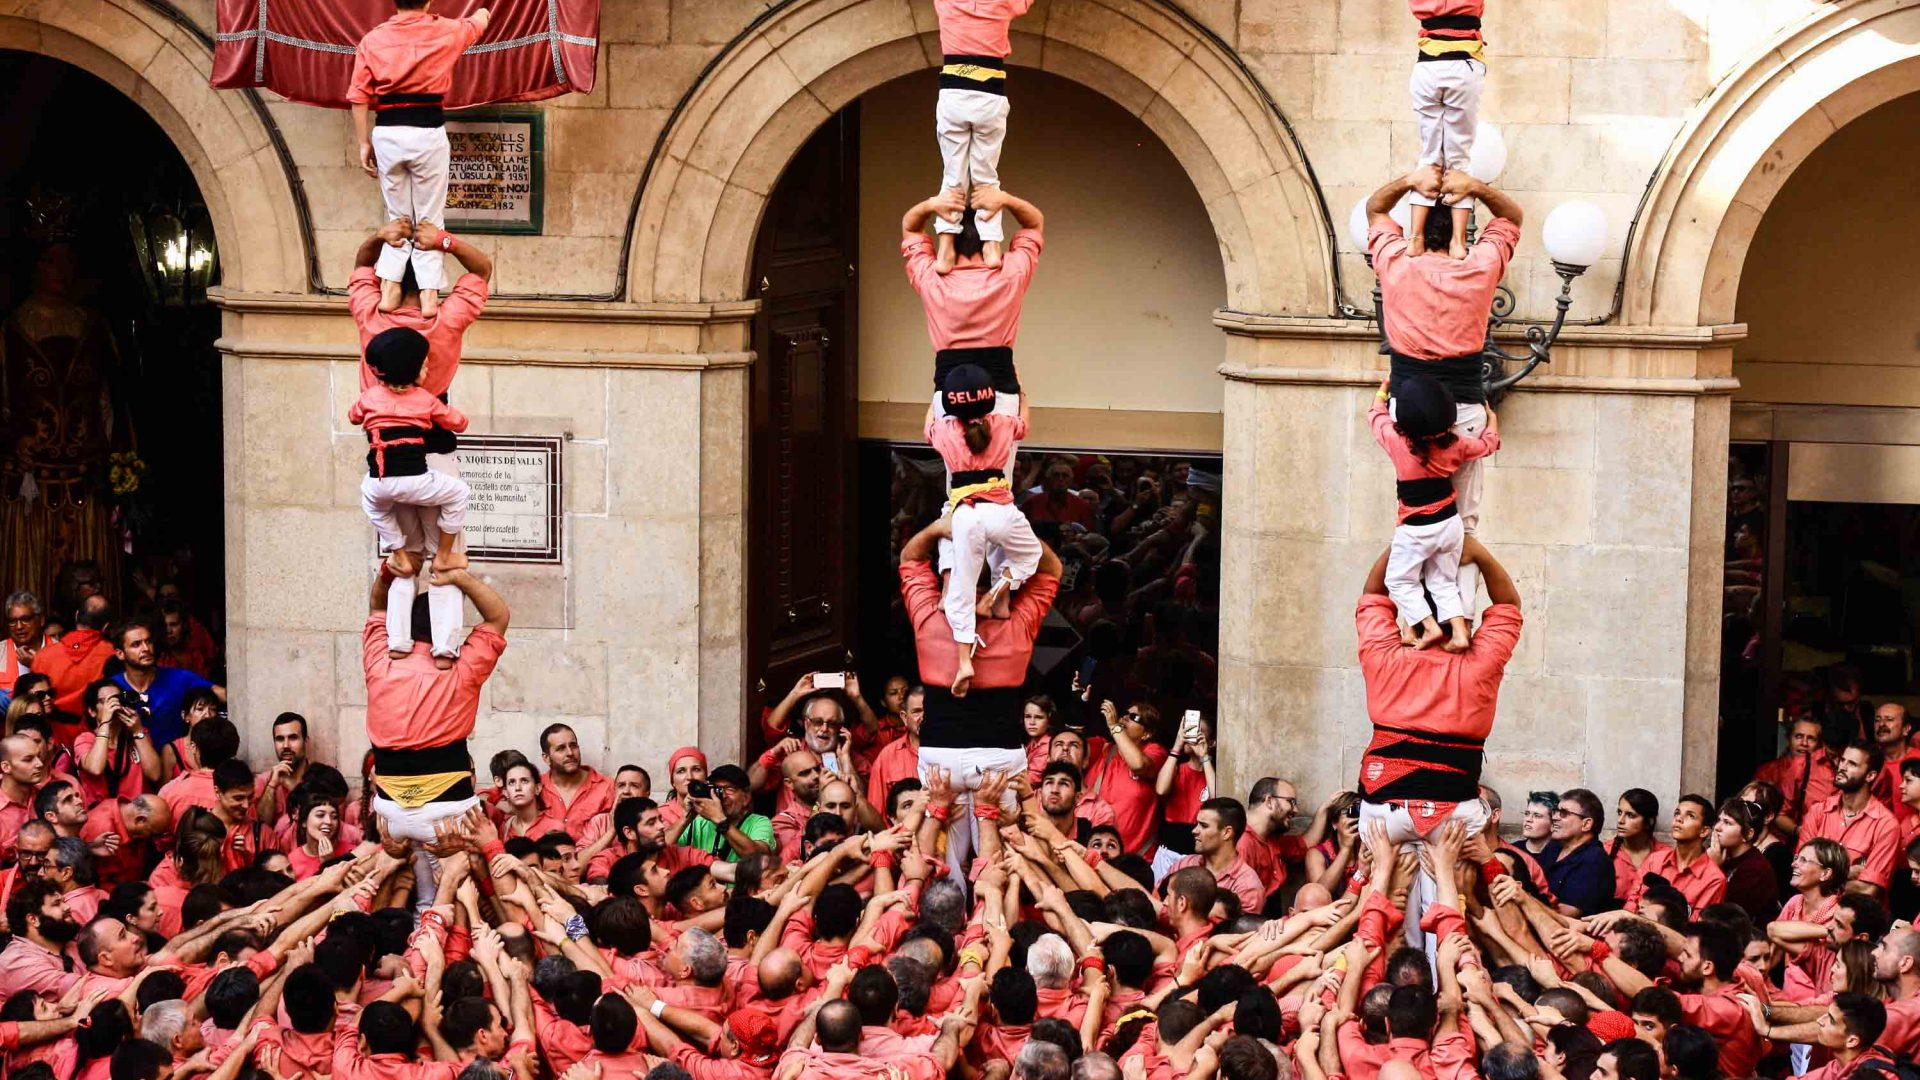 The Colla Joves team of castellers (human towers) in the tiny Catalan city of Valls.